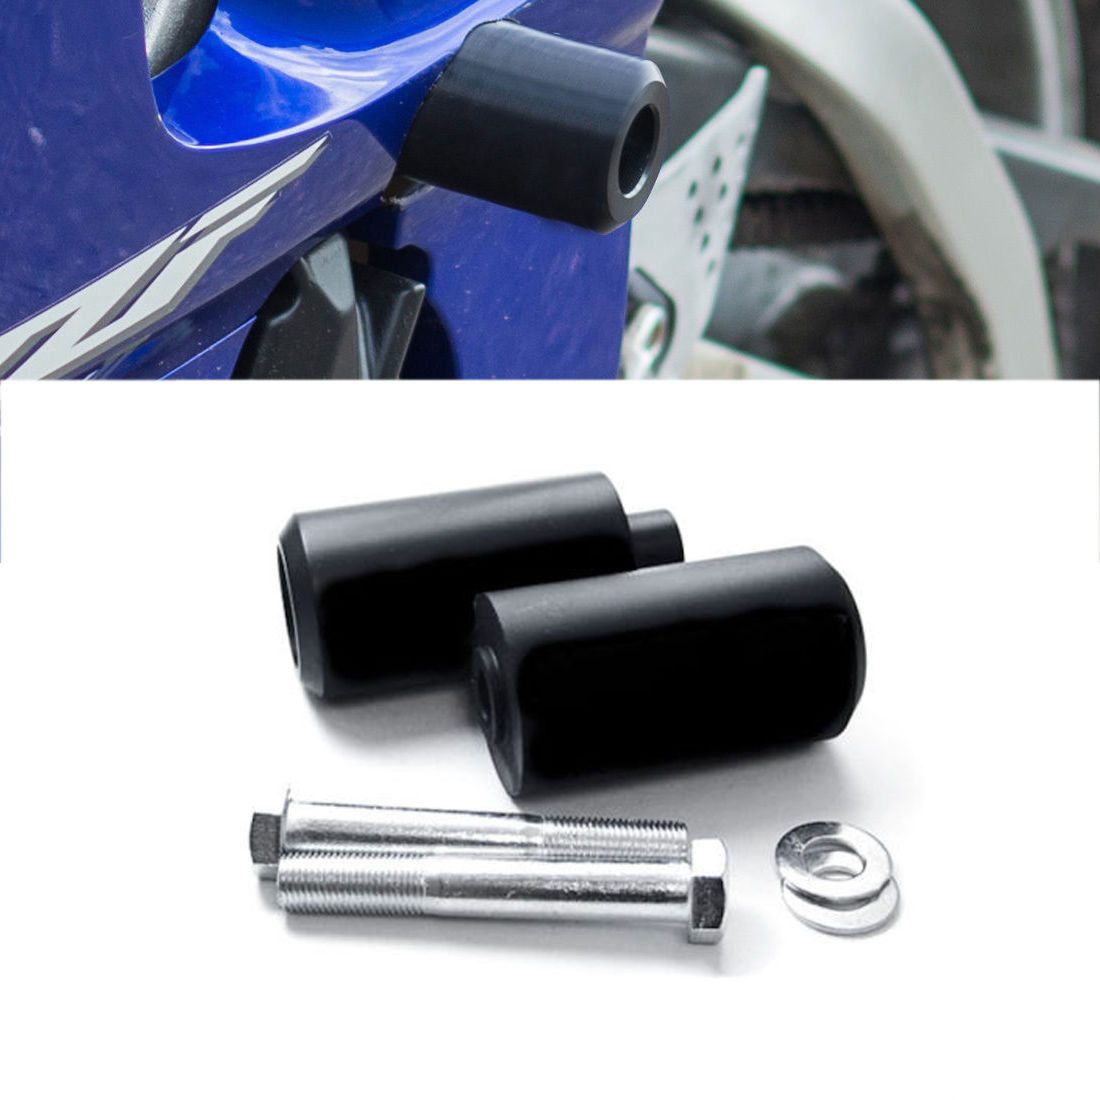 Motorcycle parts Black Frame Slider Crash Protector For 1999 2000 2001 2002 Yamaha YZF R6 YZFR6 cnc brake clutch levers for yamaha yzfr6 yzf r6 yzf r6 yzf600 yzf r 6 yzf r6 1998 1999 2000 2001 2002 extendable foldable lever